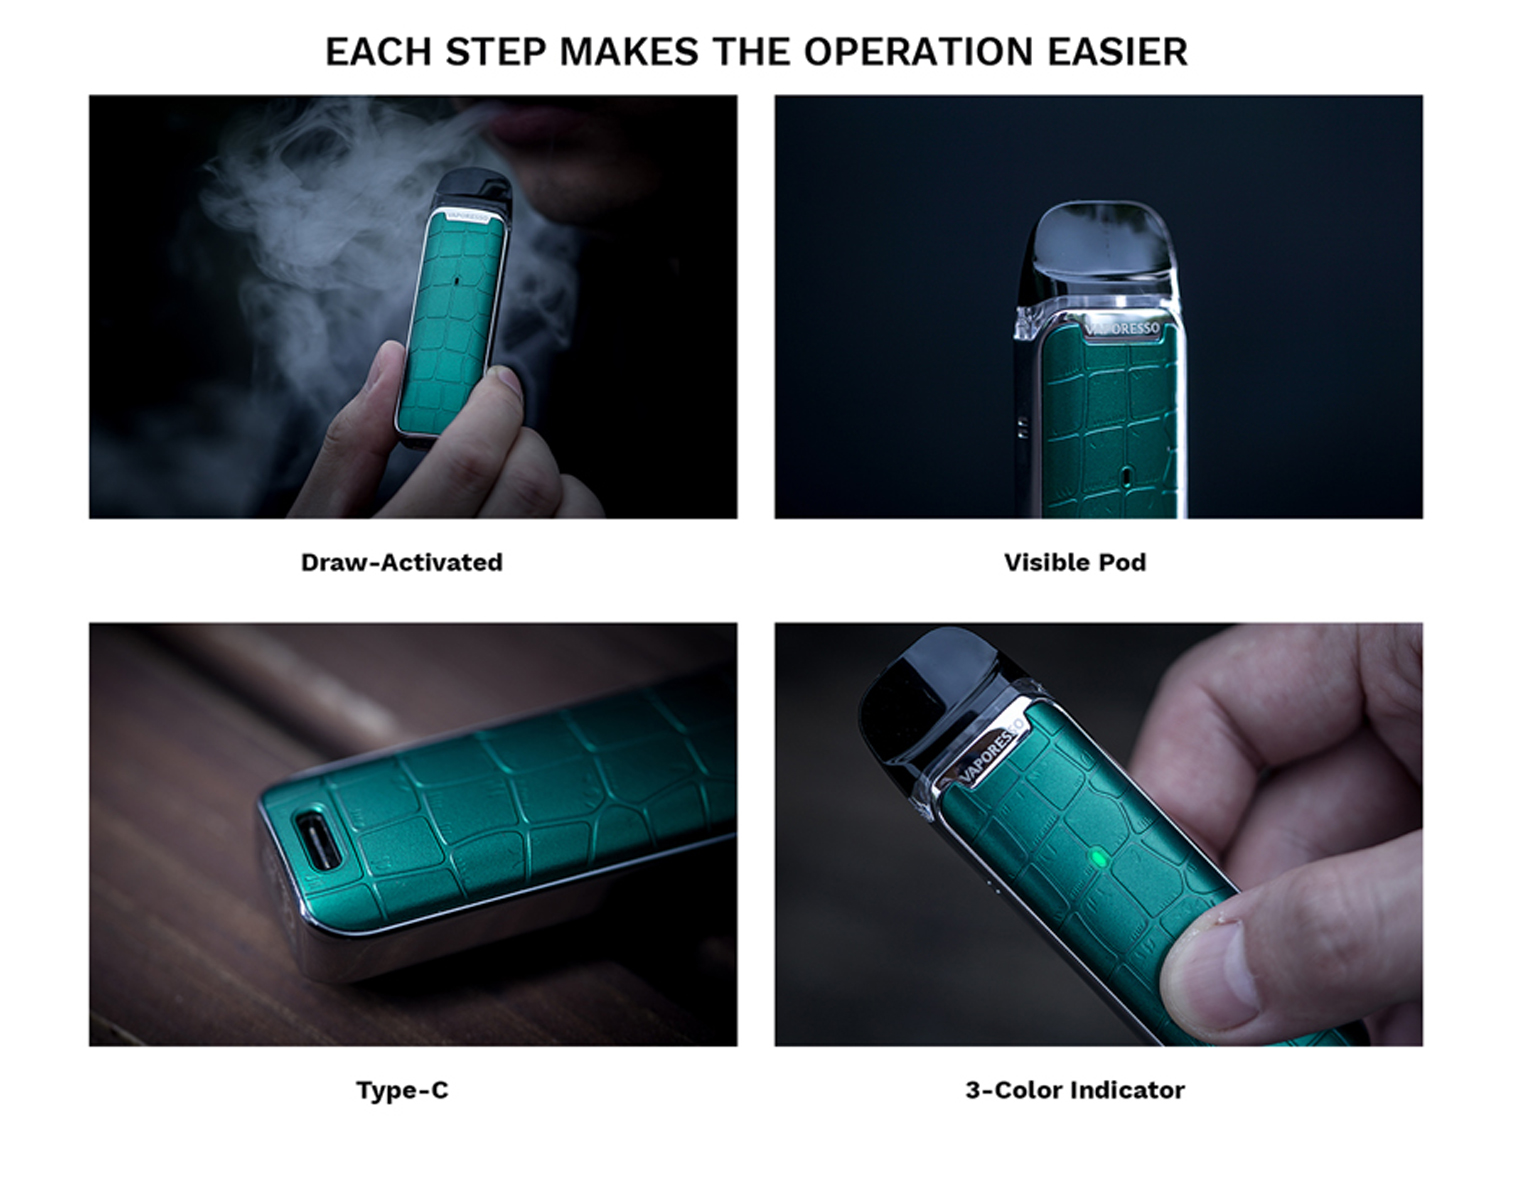 Vaporesso Luxe Q easy operation